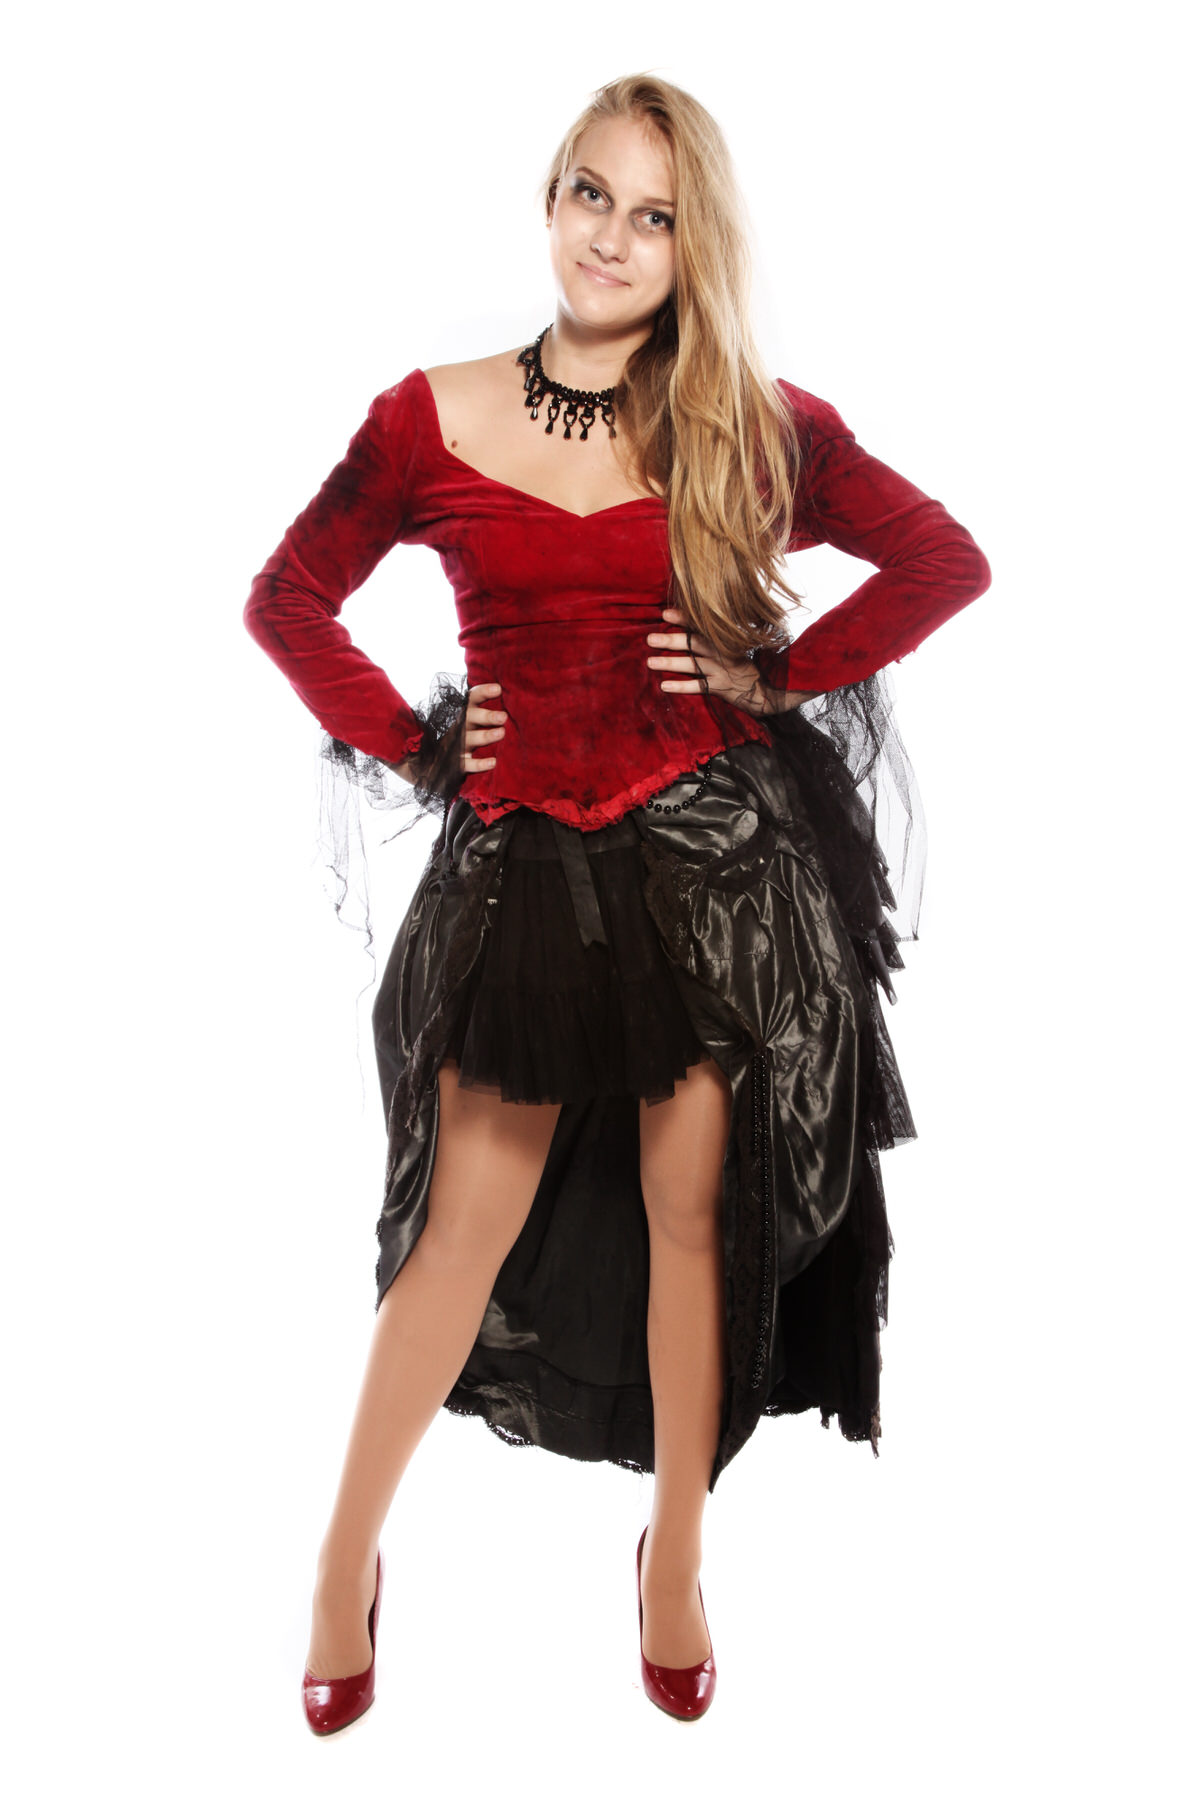 VICTORIAN BUSTLE AND RED VELVET GOTHIC LADY COSTUME